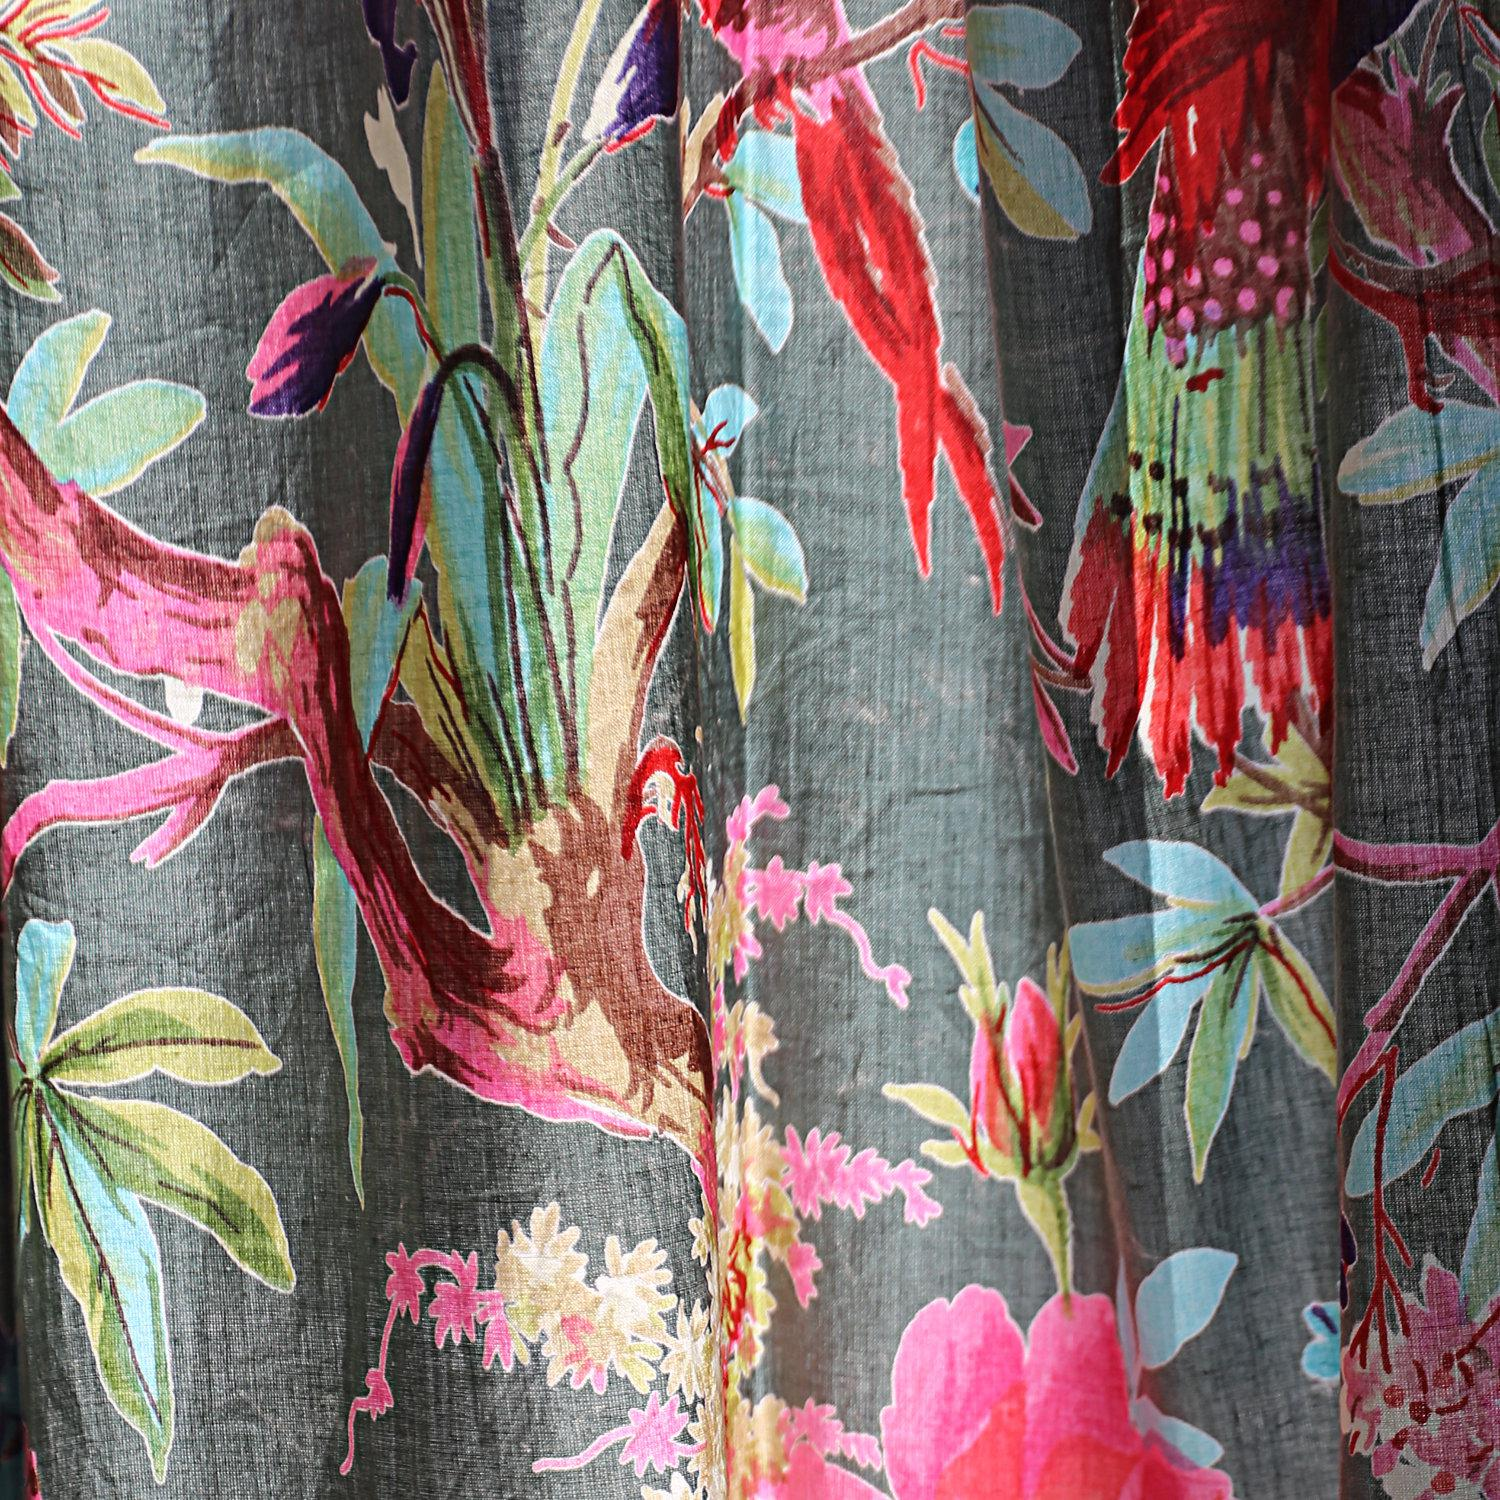 frida kahlo boho curtains eclectic curtains frida curtains boho decor boho curtain panels boho home decor two panels christmas gift